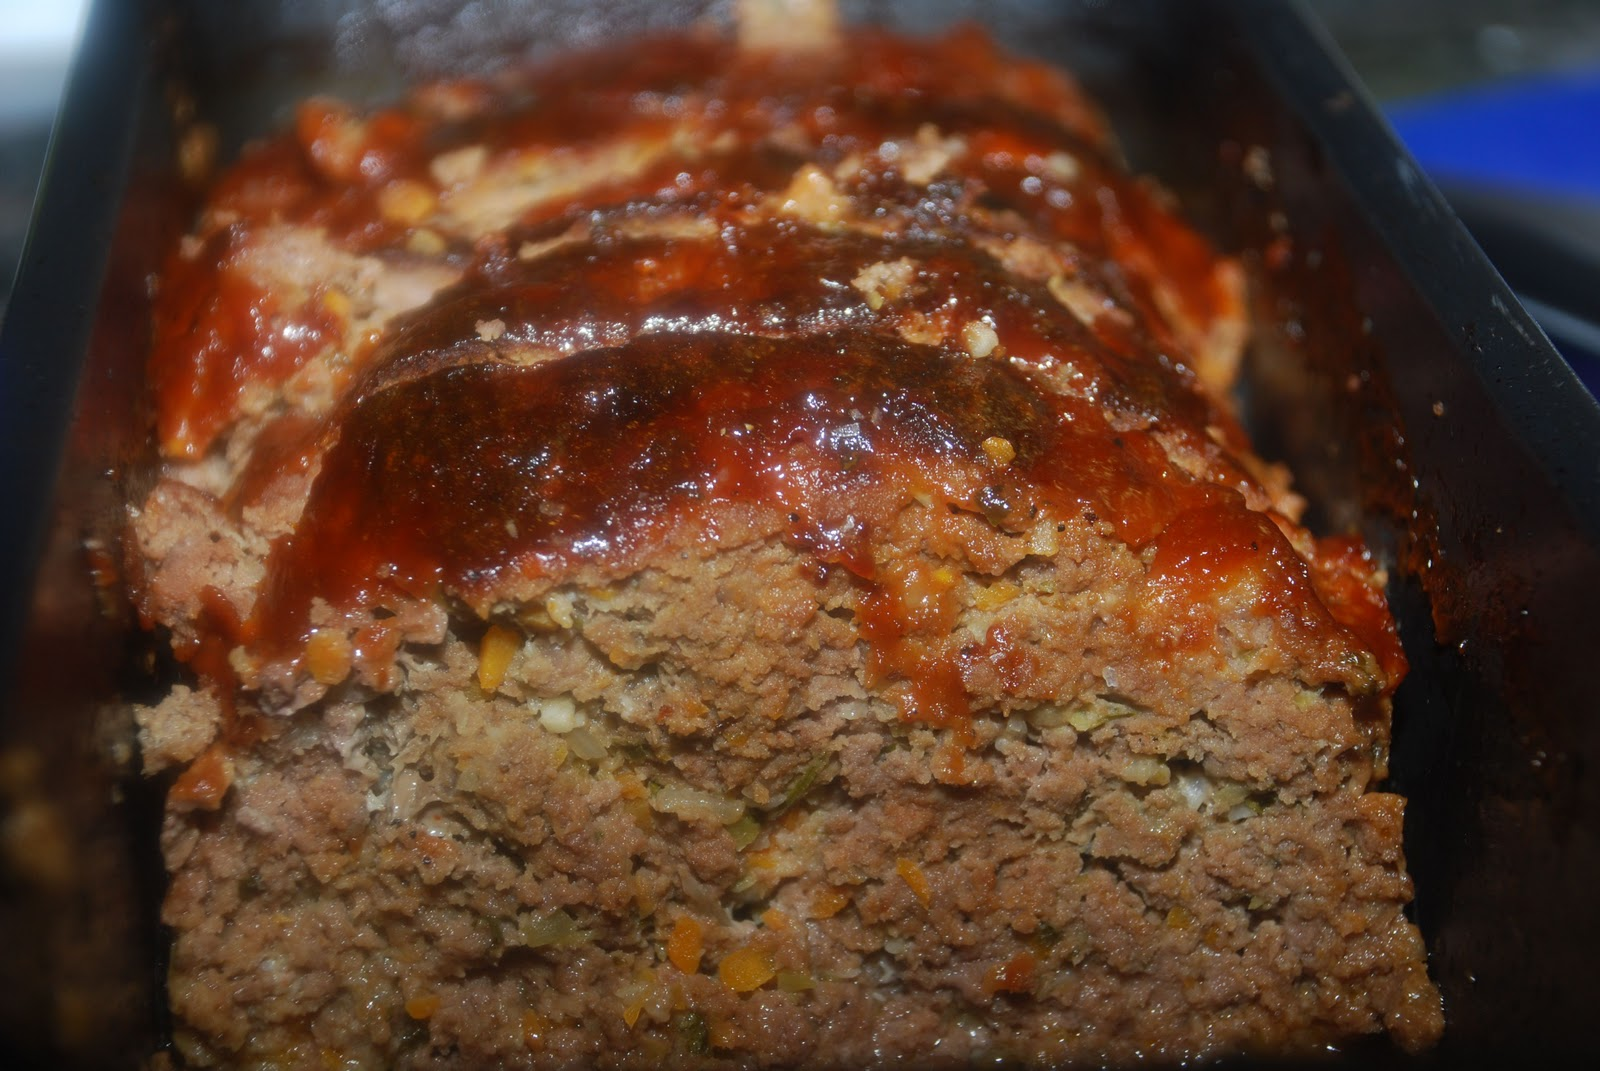 ... on the Vine: Ultimate Best-Ever Meatloaf and Roasted Smashed Potatoes